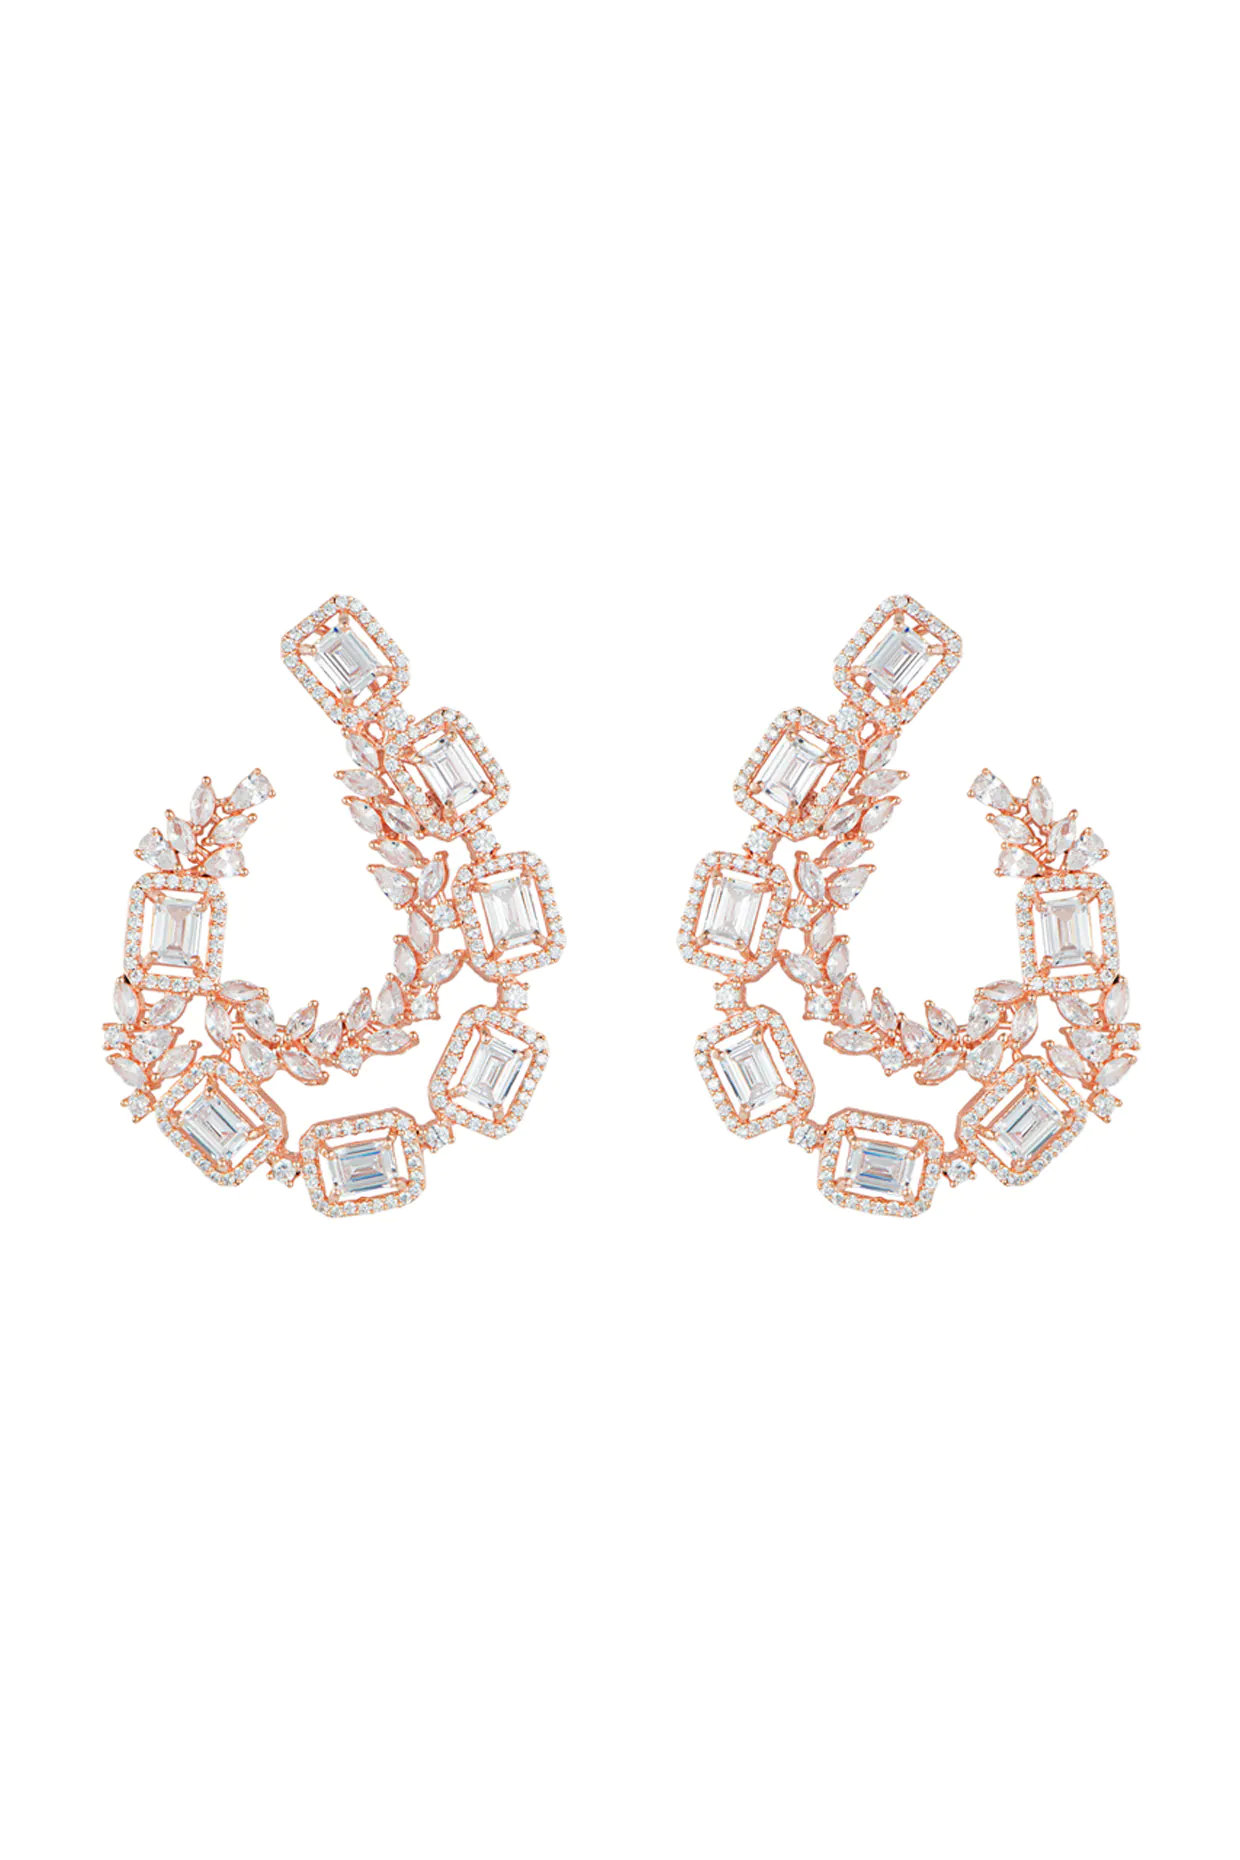 Rose gold plated faux diamond earrings by Aster-Handpicked for You